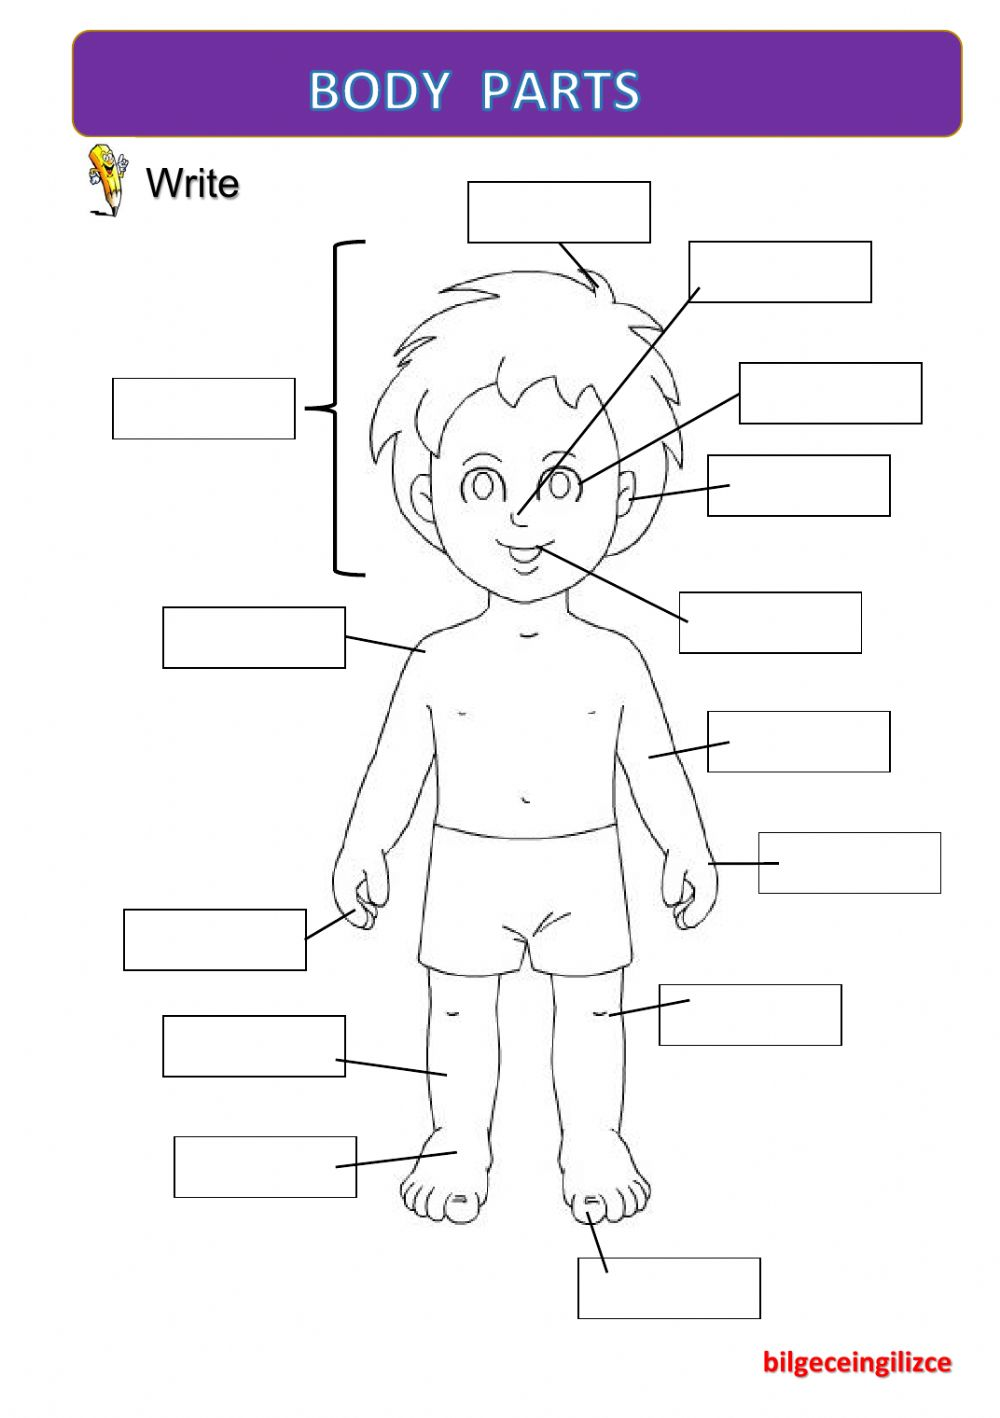 Worksheets Worksheet-body-parts body partswith video interactive worksheet text